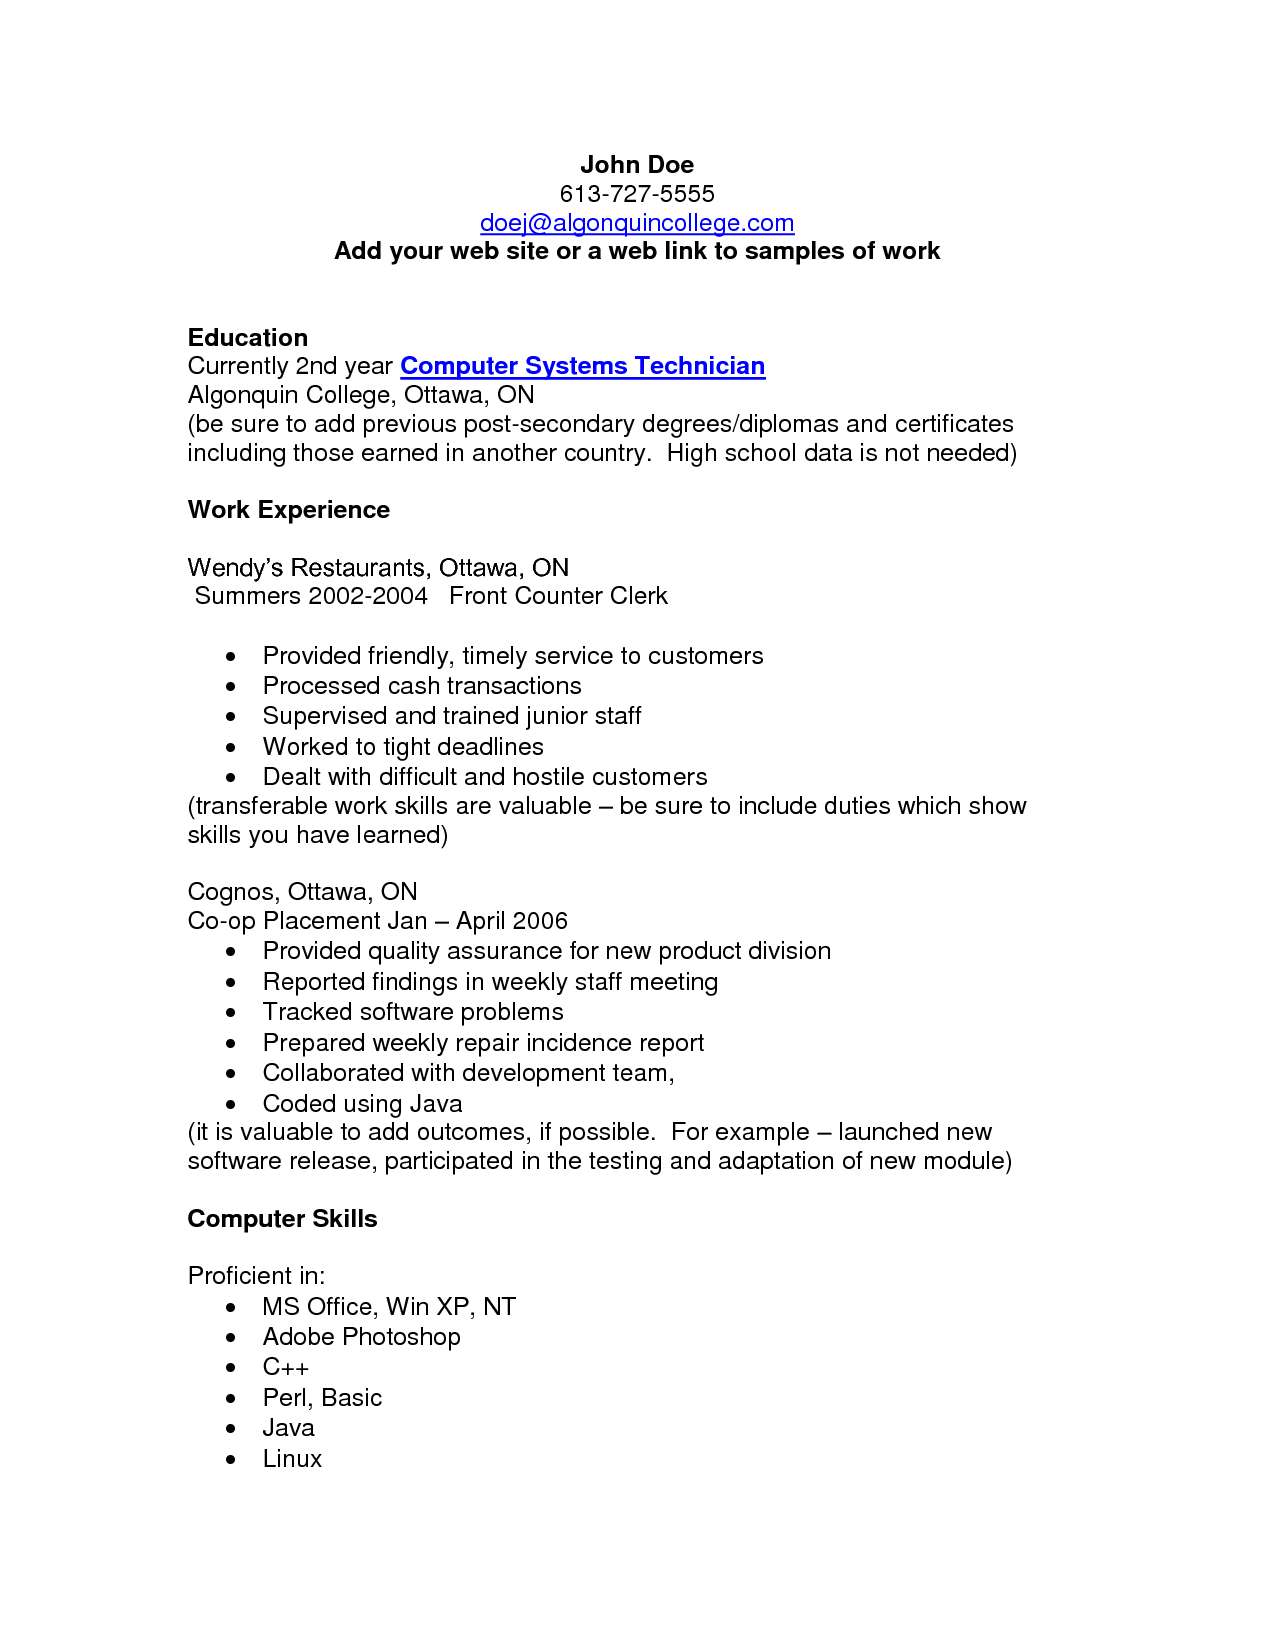 Computer Proficiency Resume Format - http://www.resumecareer.info ...